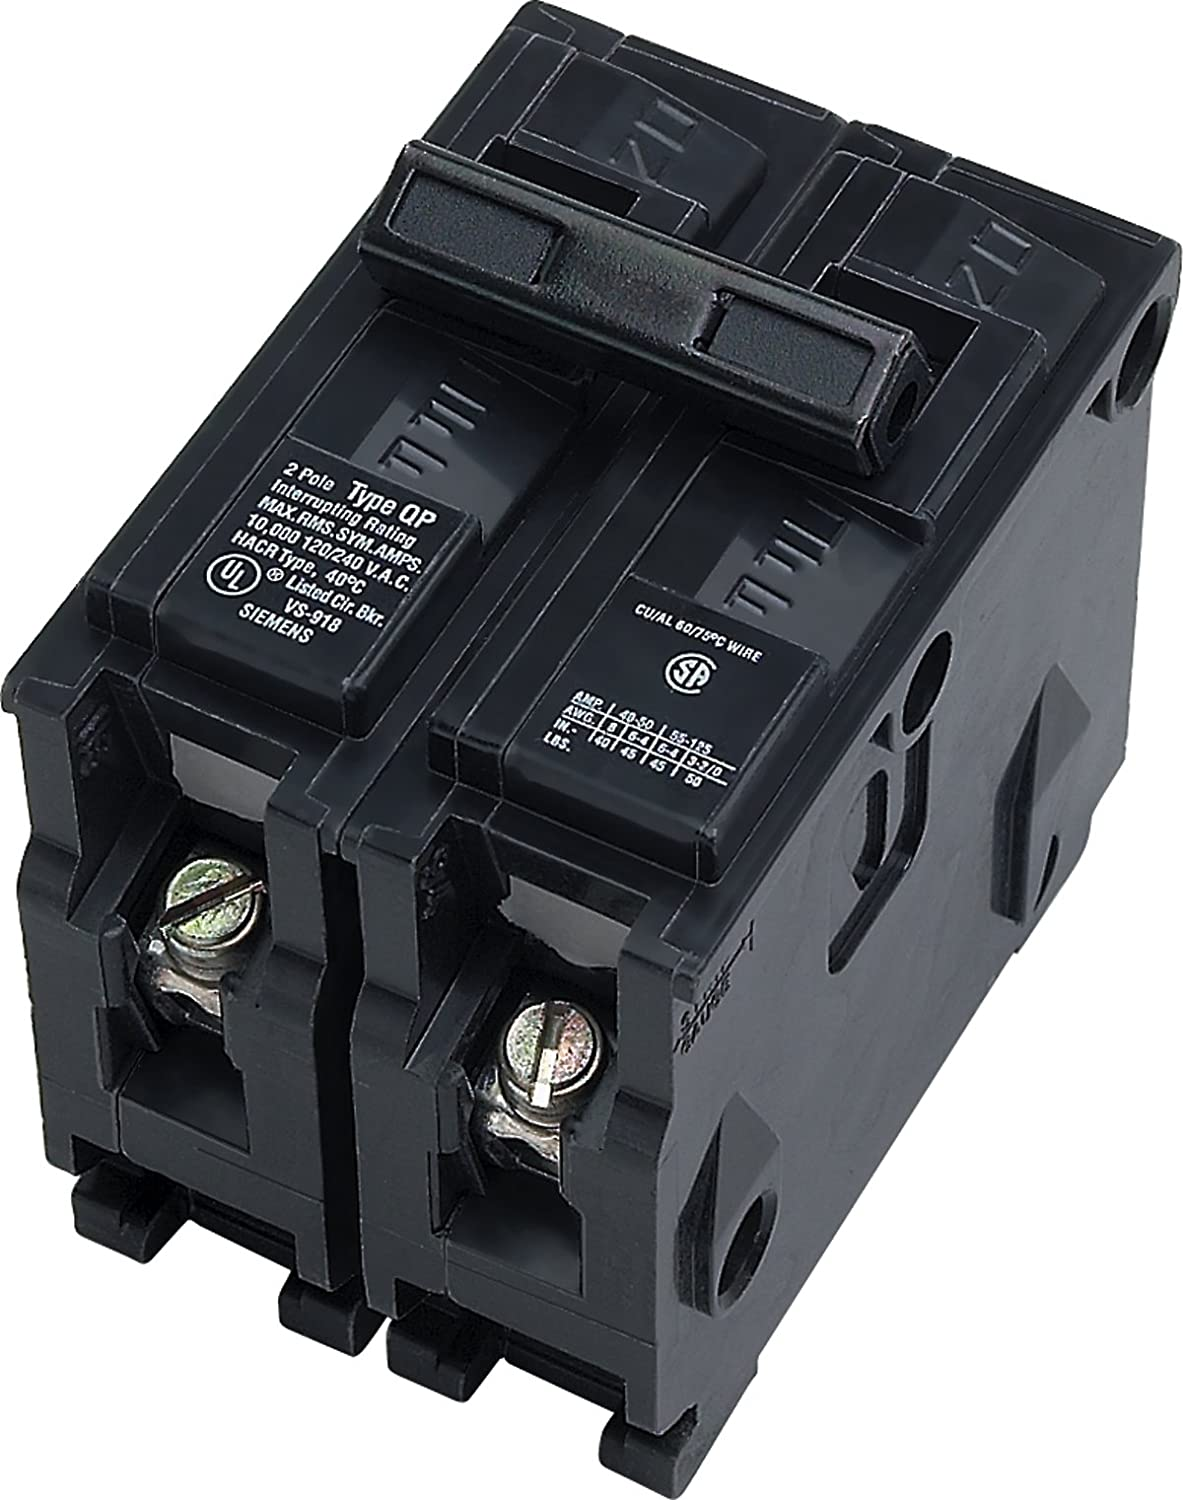 Q270 70 Amp Double Pole Type Qp Circuit Breaker Siemens How To Install A 220v In Panel Do It Yourself